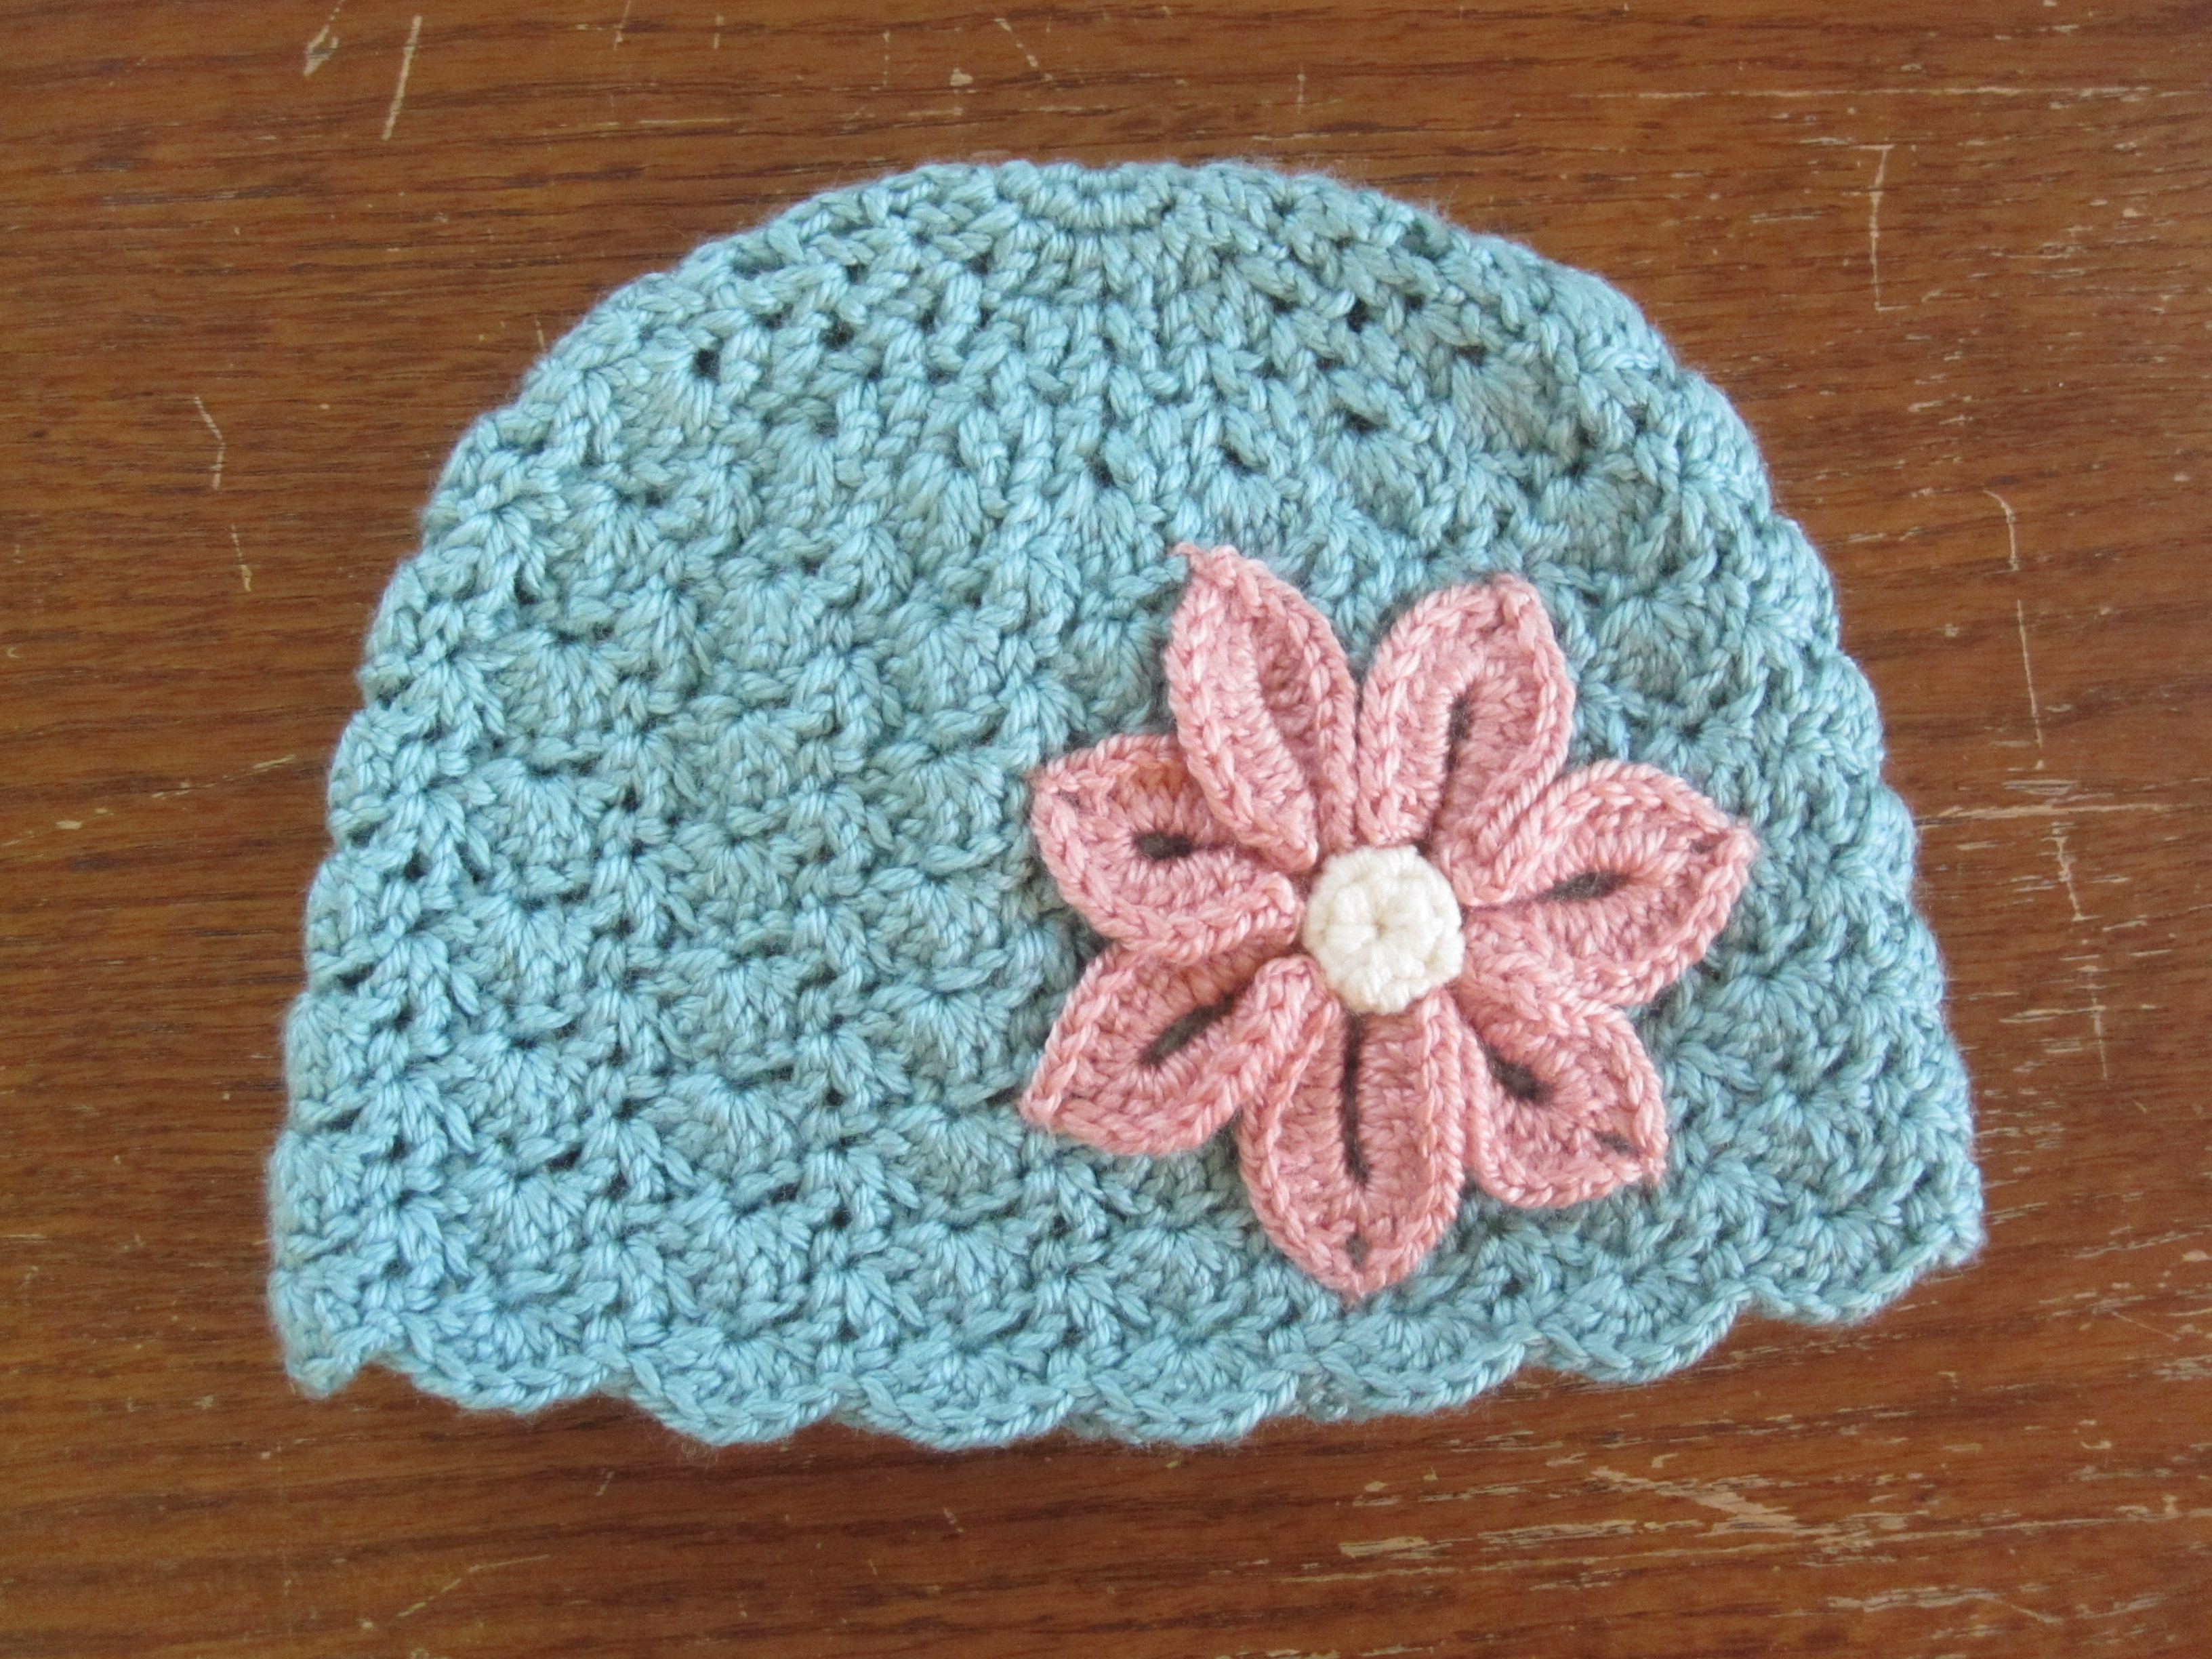 Beautiful Shell Crochet Beanie Hat Free Pattern Dancox for Stitch Beanie Of Awesome 40 Images Stitch Beanie